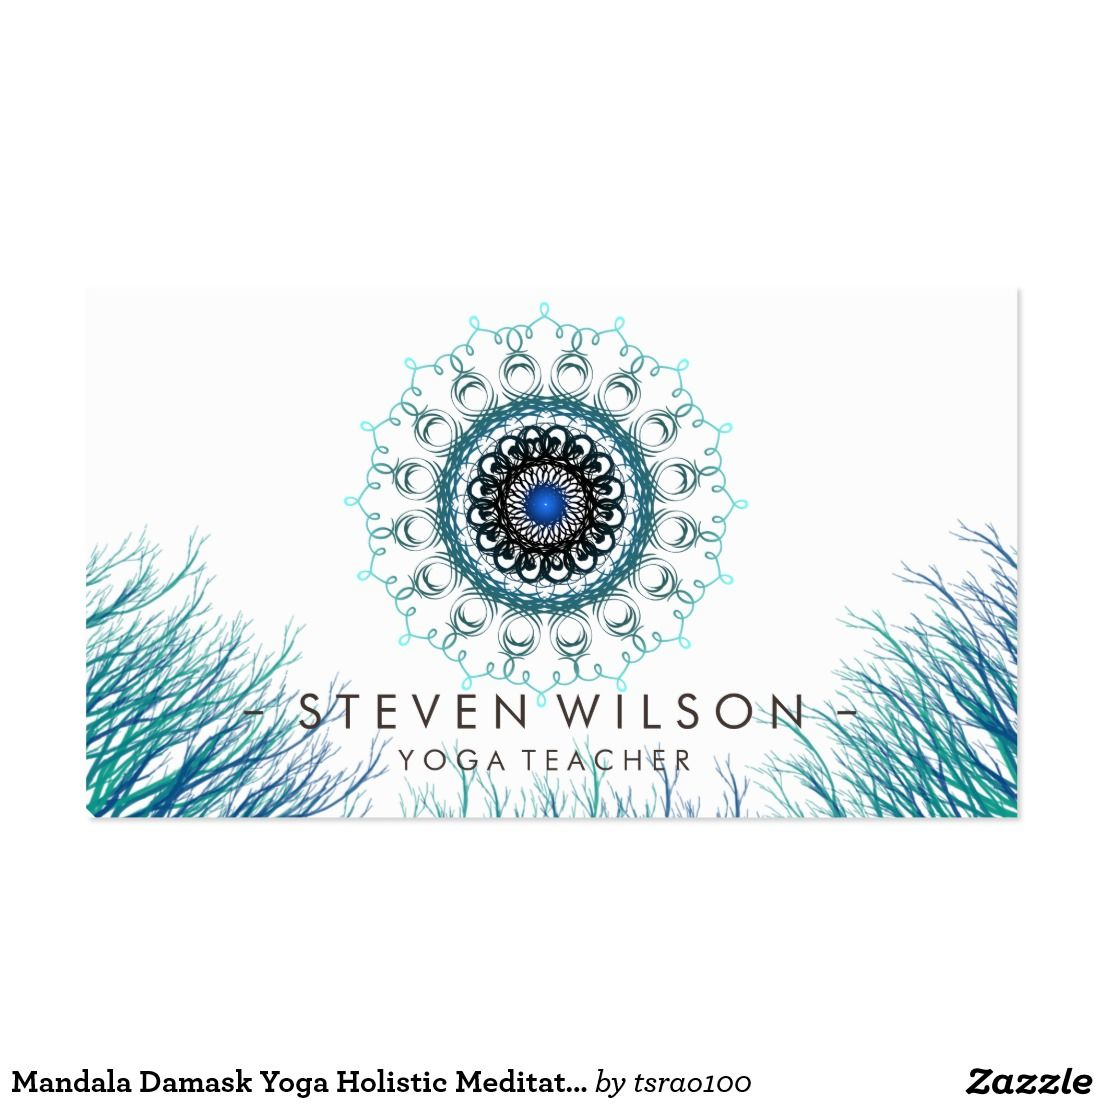 Mandala Damask Yoga Holistic Meditation Massage Business Card ...